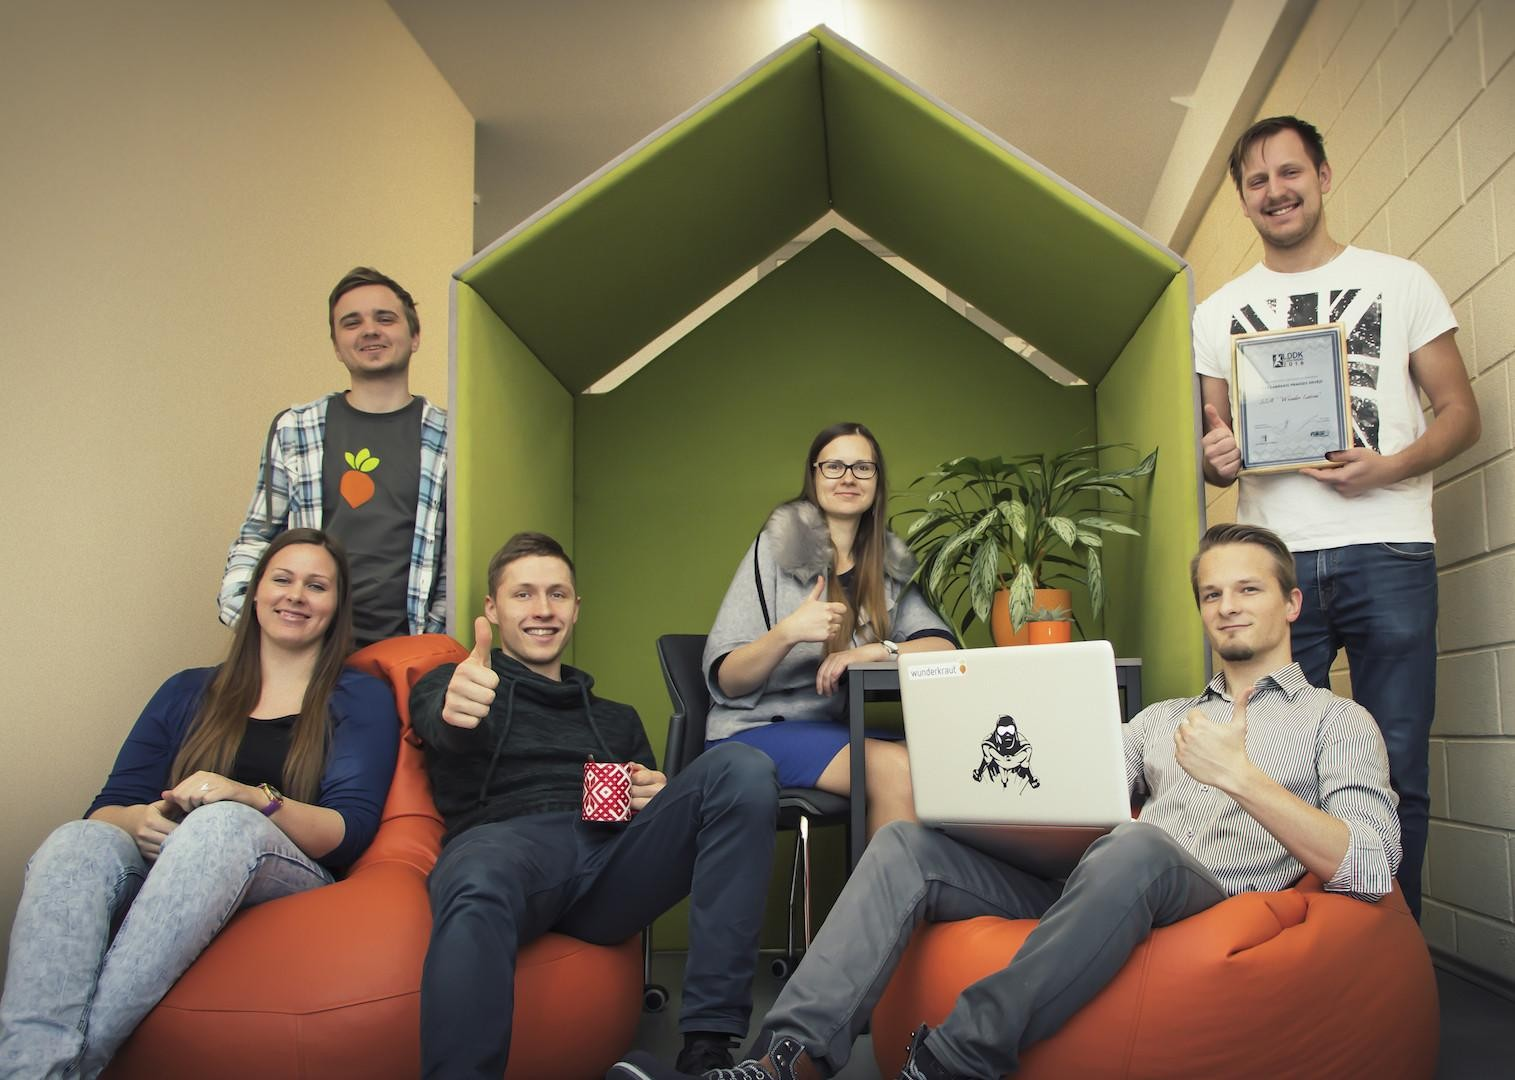 Six interns at Valmiera office